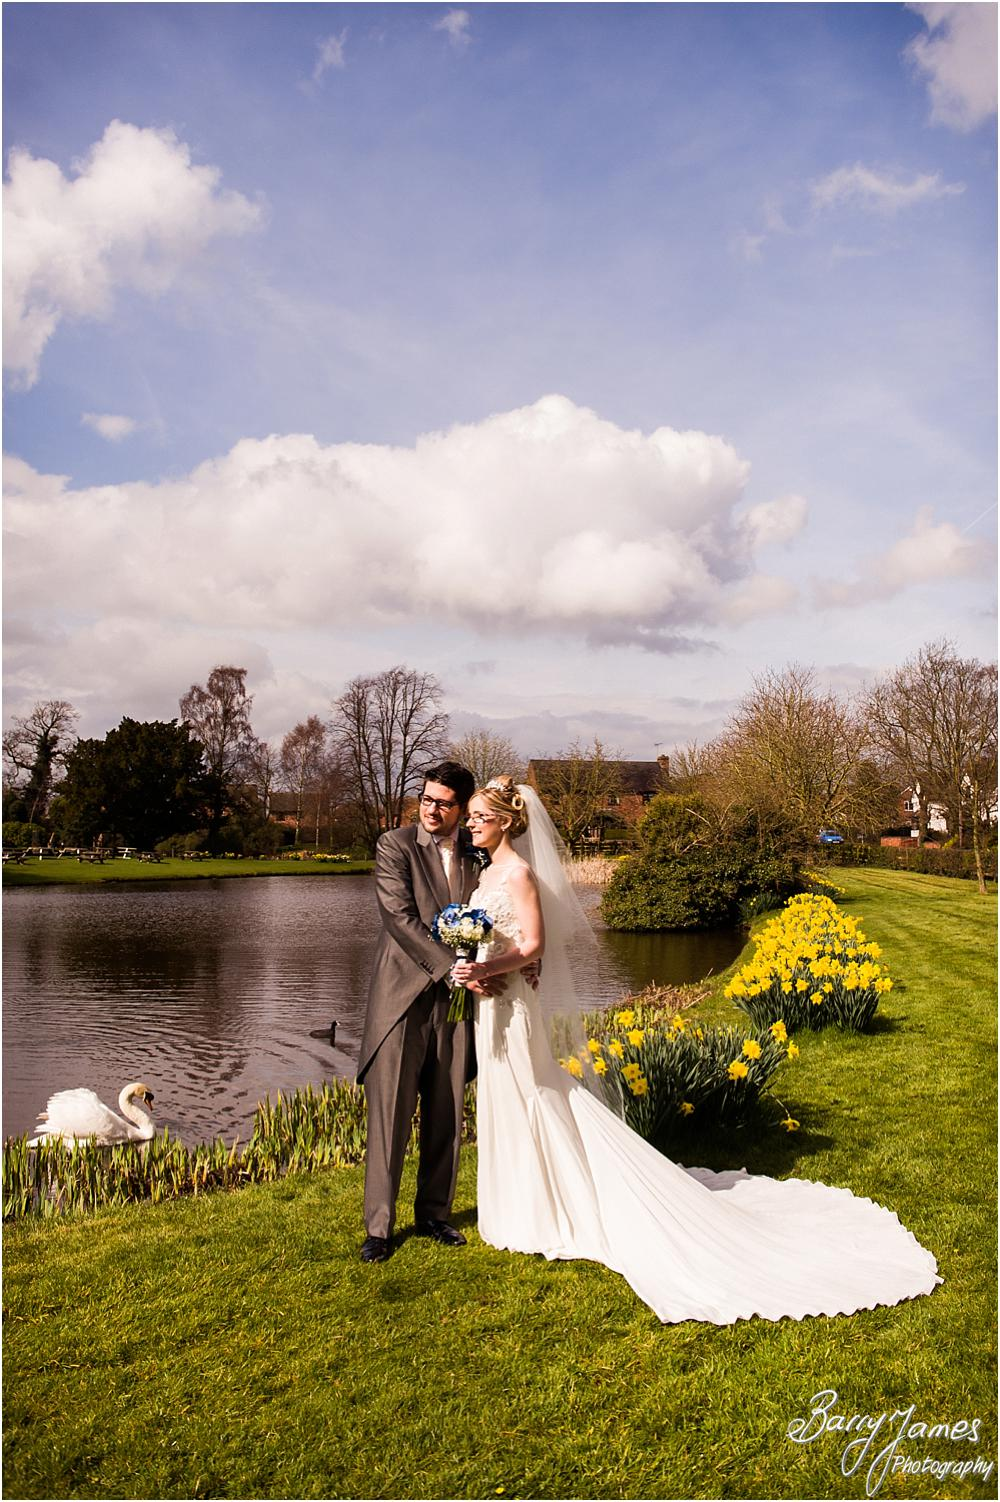 Beautiful spring portraits on the wedding day at The Moat House in Acton Trussell by Acton Trussell Wedding Photographer Barry James